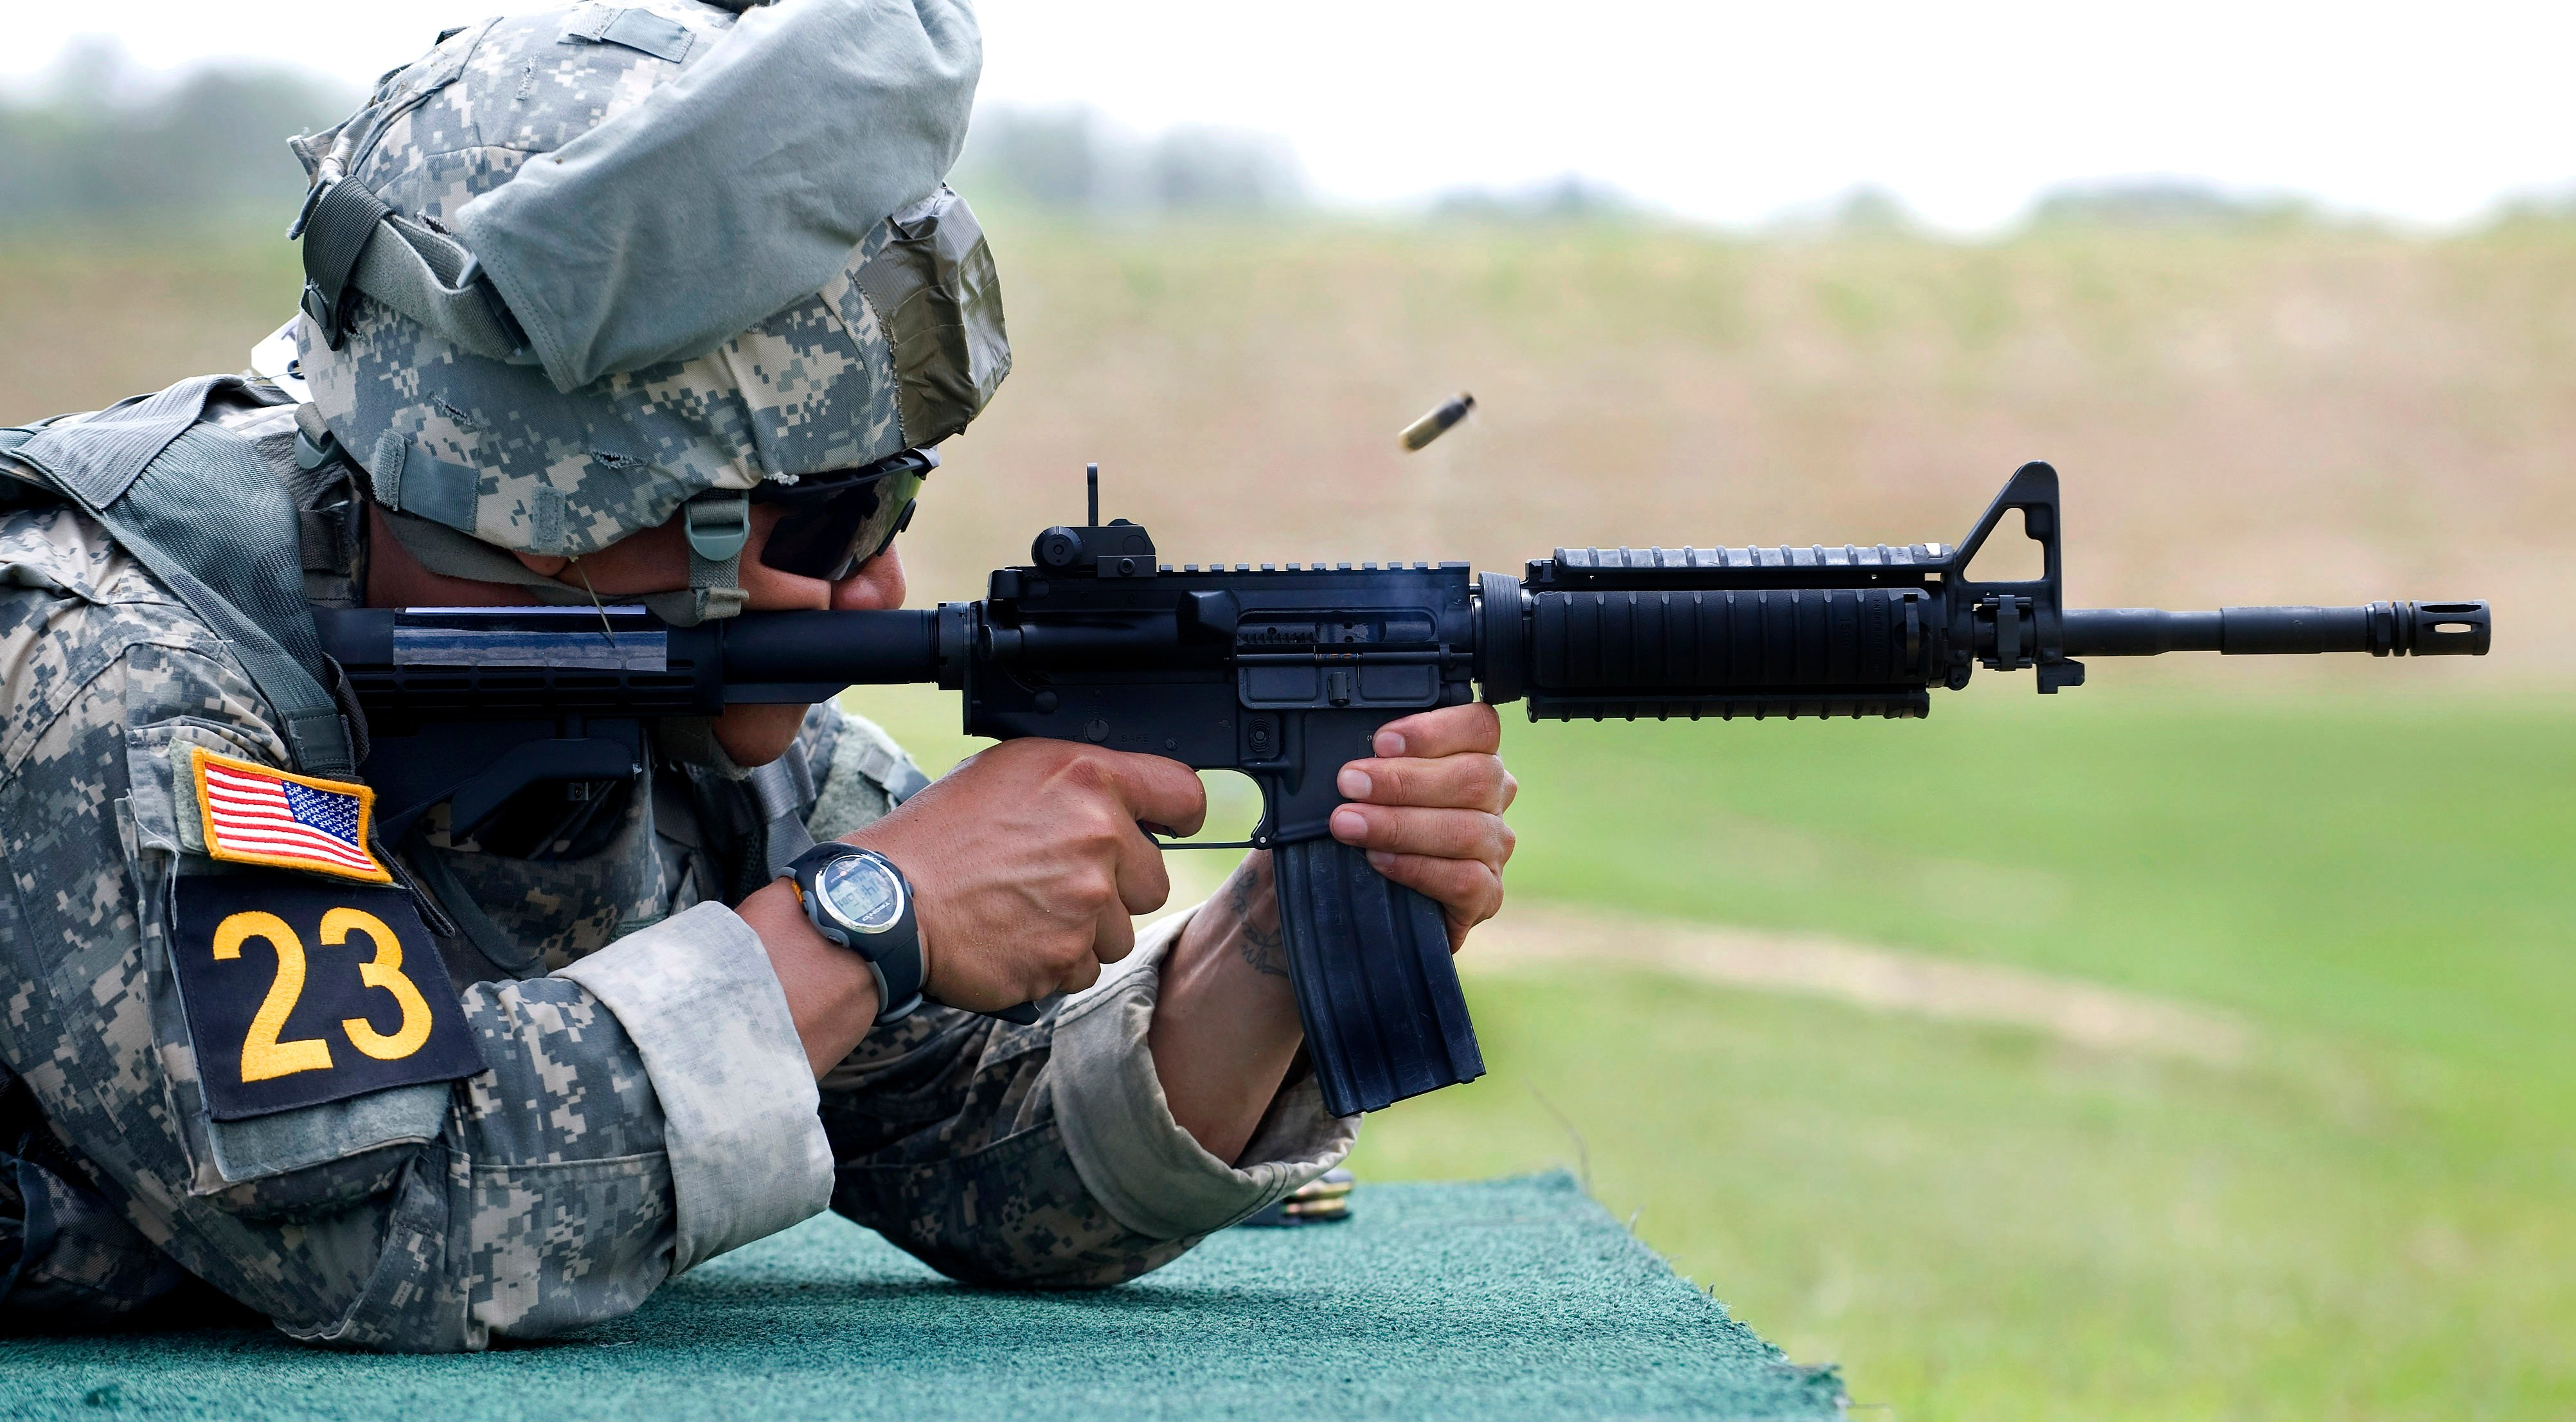 M4: The Gun the Army Loves to Go to War With